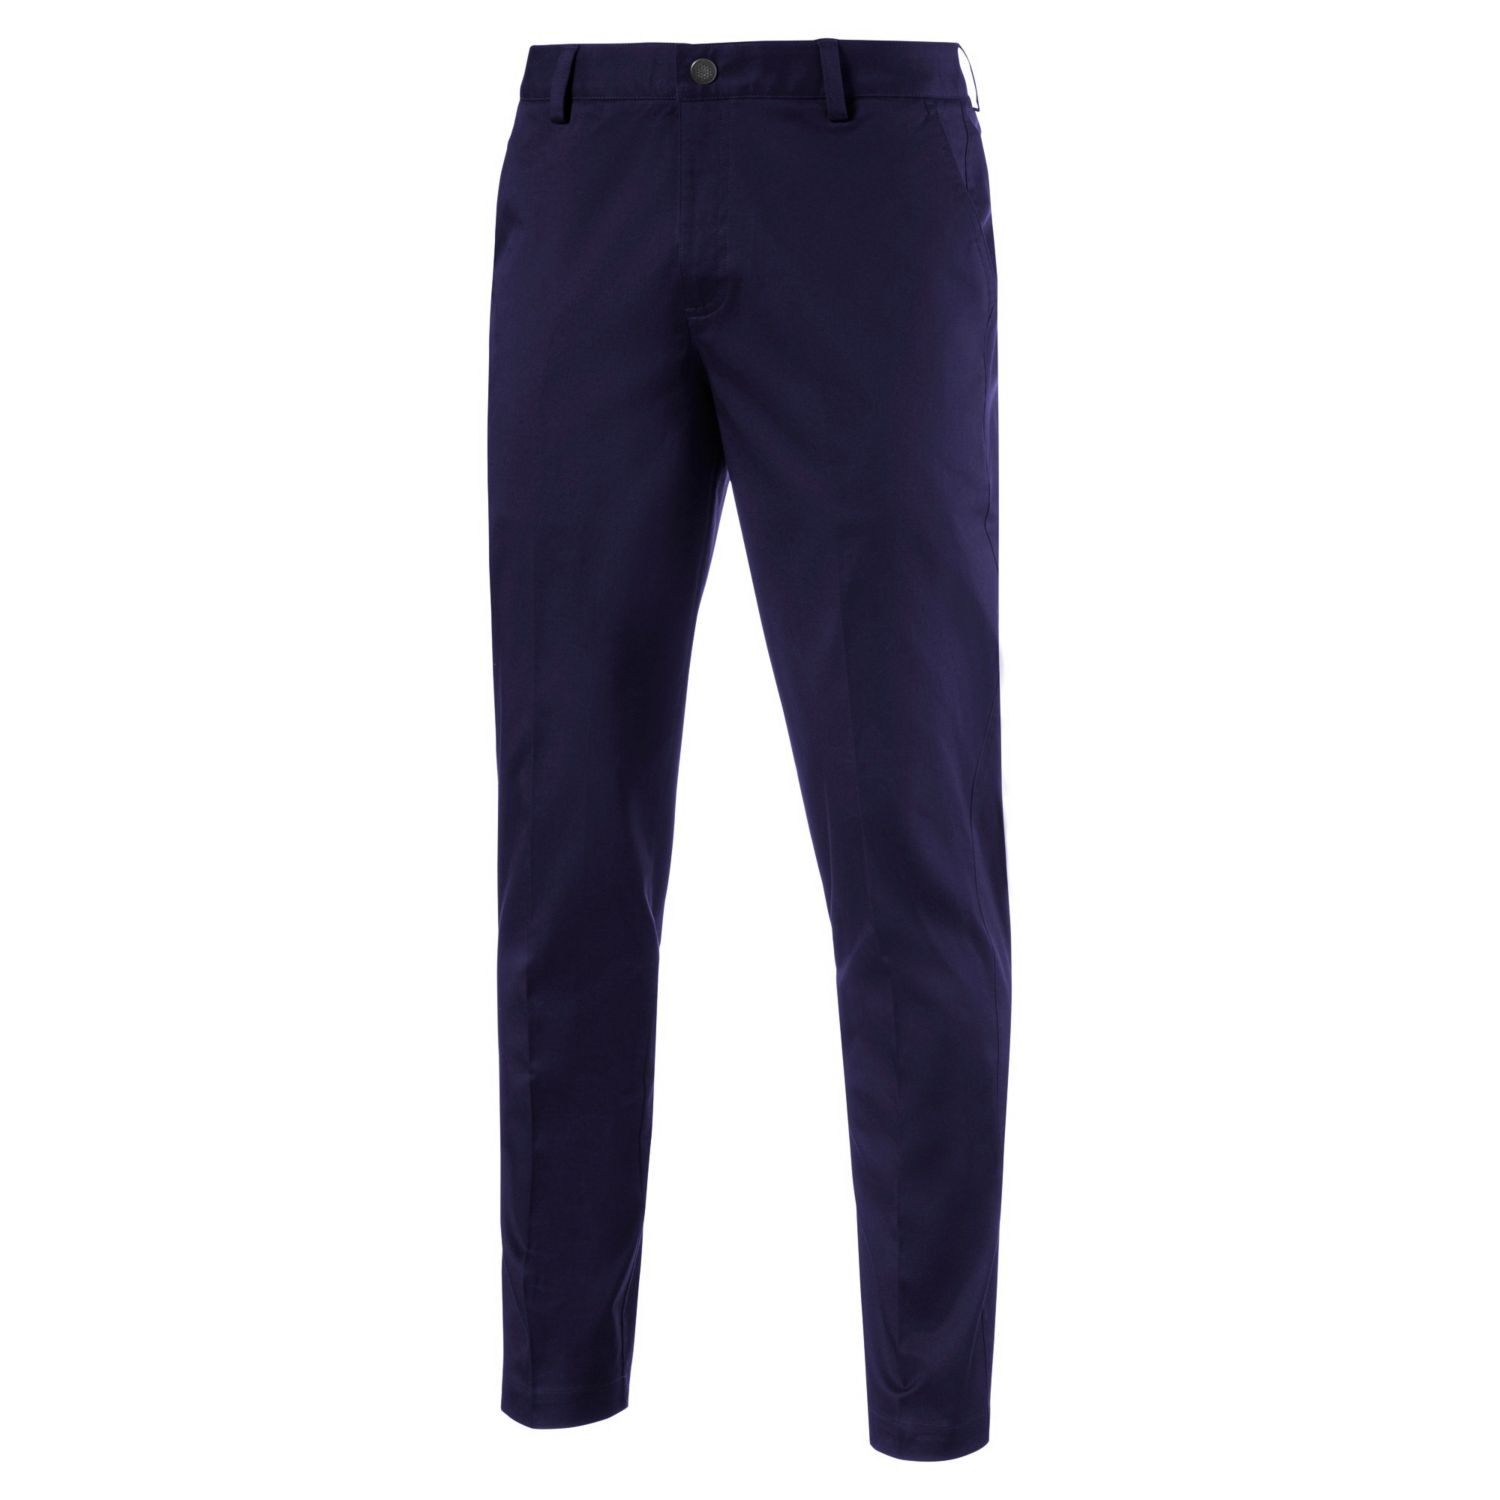 PUMA TAILORED CHINO PANT MENS GOLF TROUSERS